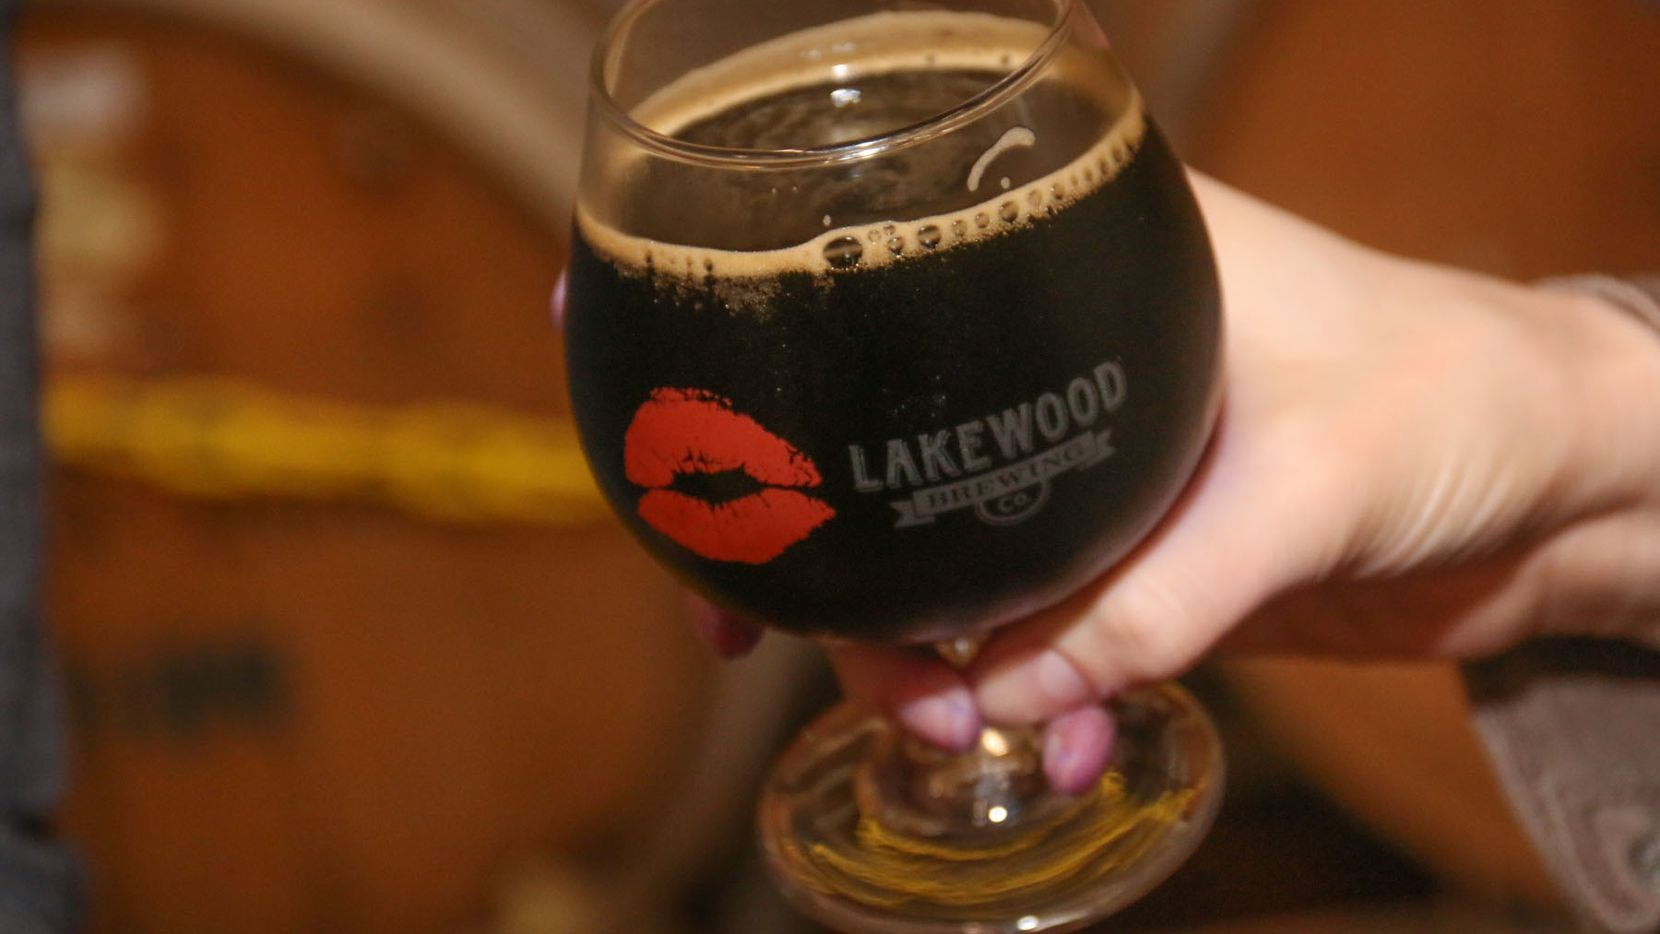 Lakewood Brewing Co. held its release party for its newest beer Bourbon Barrel Temptress at the brewery in Garland on December 12, 2015.